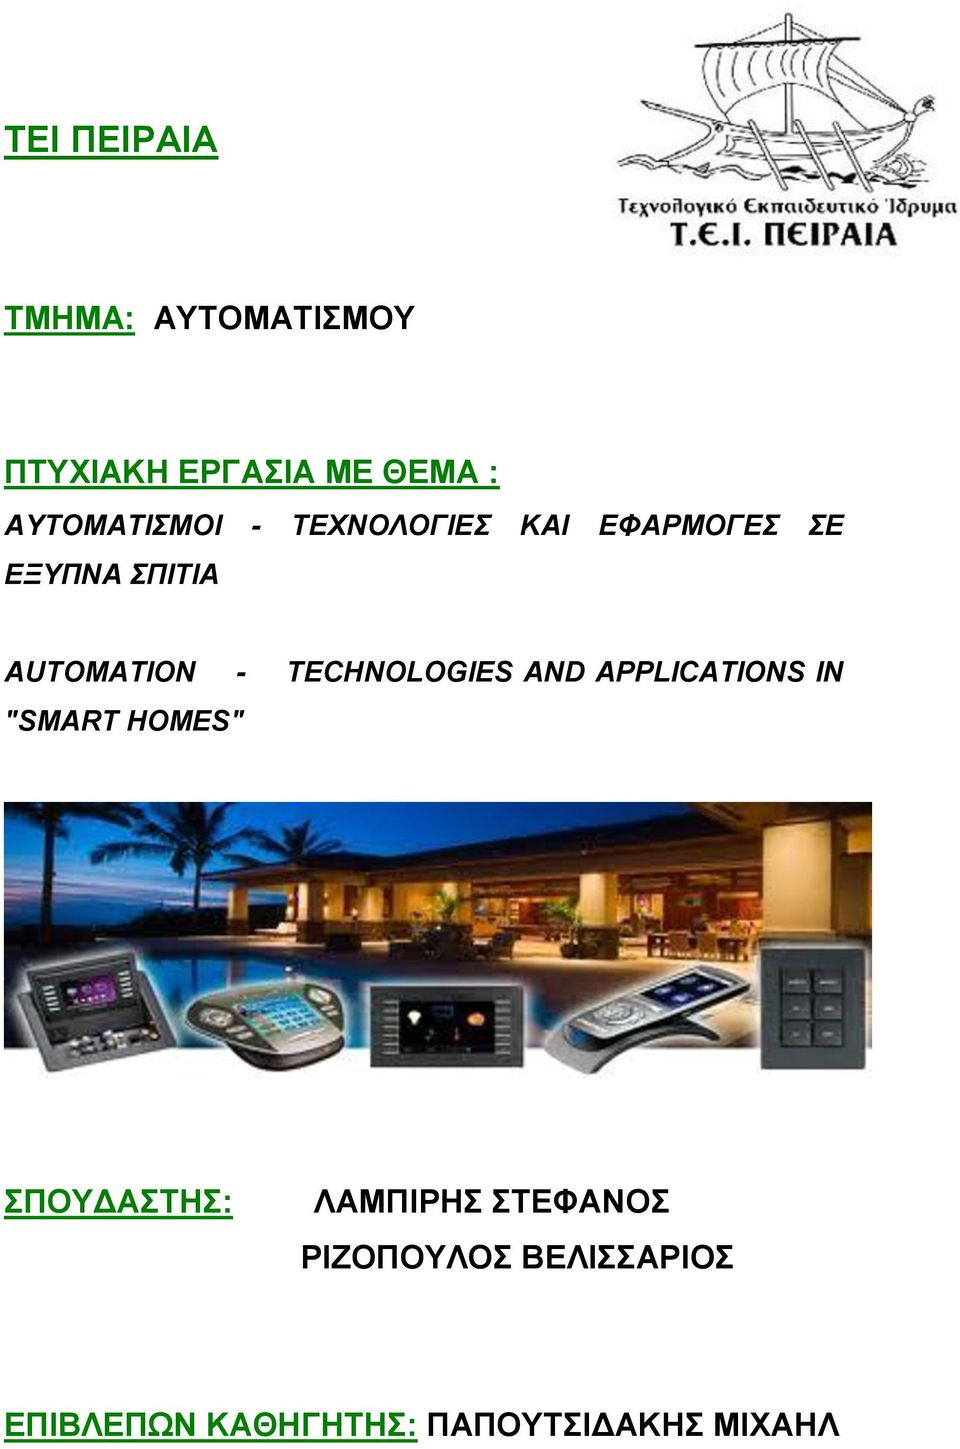 "AUTOMATION - TECHNOLOGIES AND APPLICATIONS IN ""SMART HOMES"""